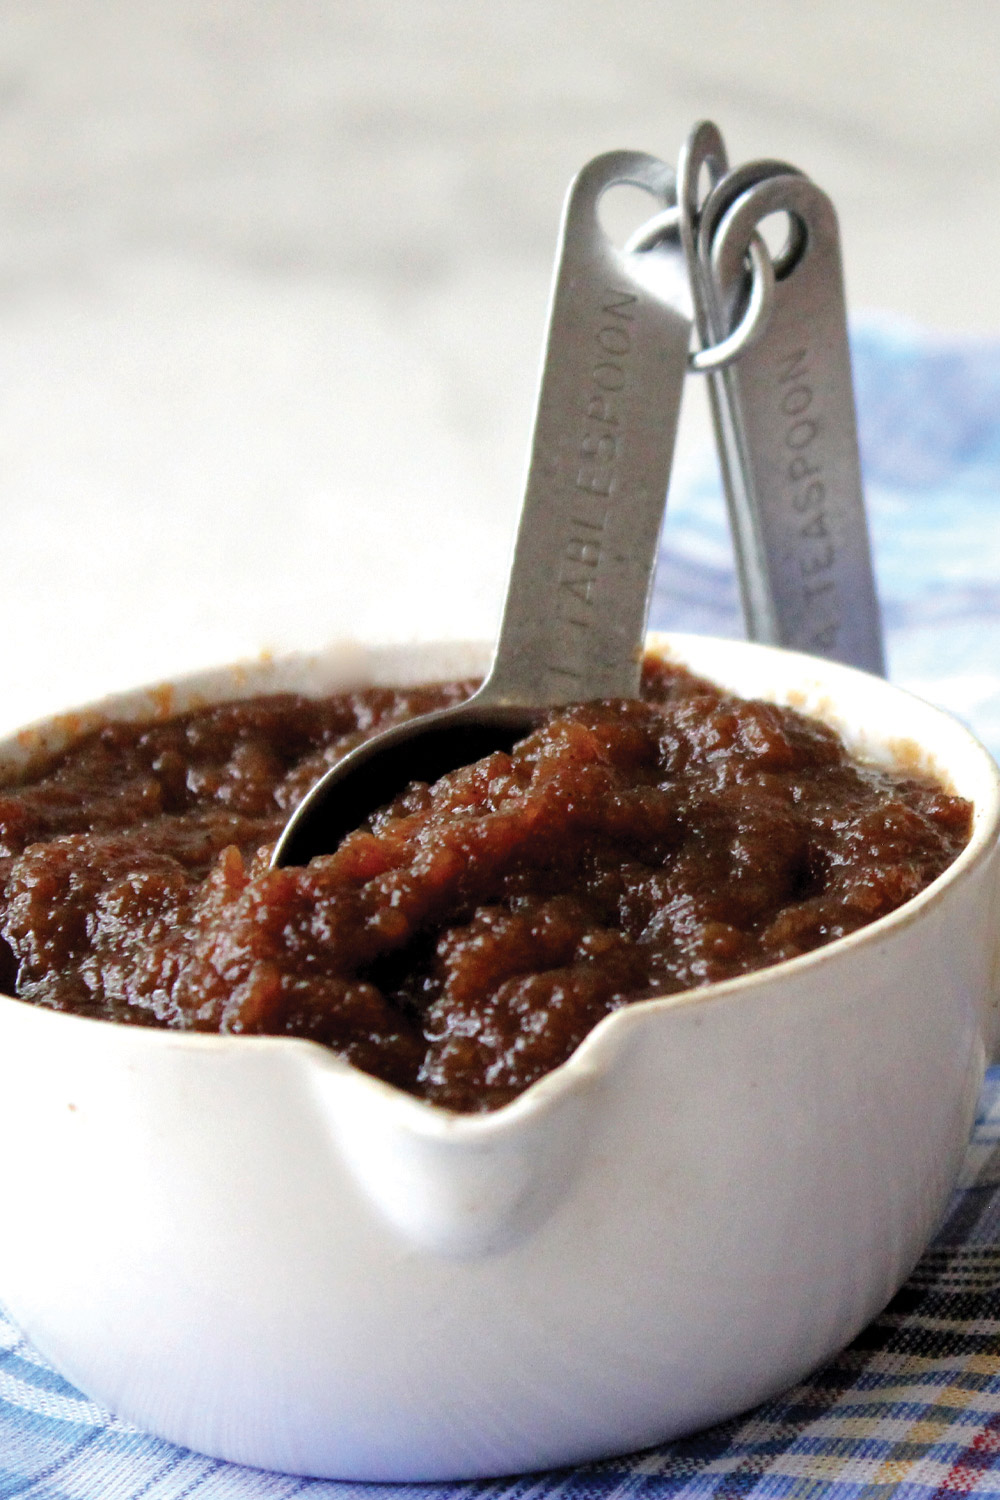 Measuring cup full of apple butter with measuring spoon standing in the thick brown apple butter